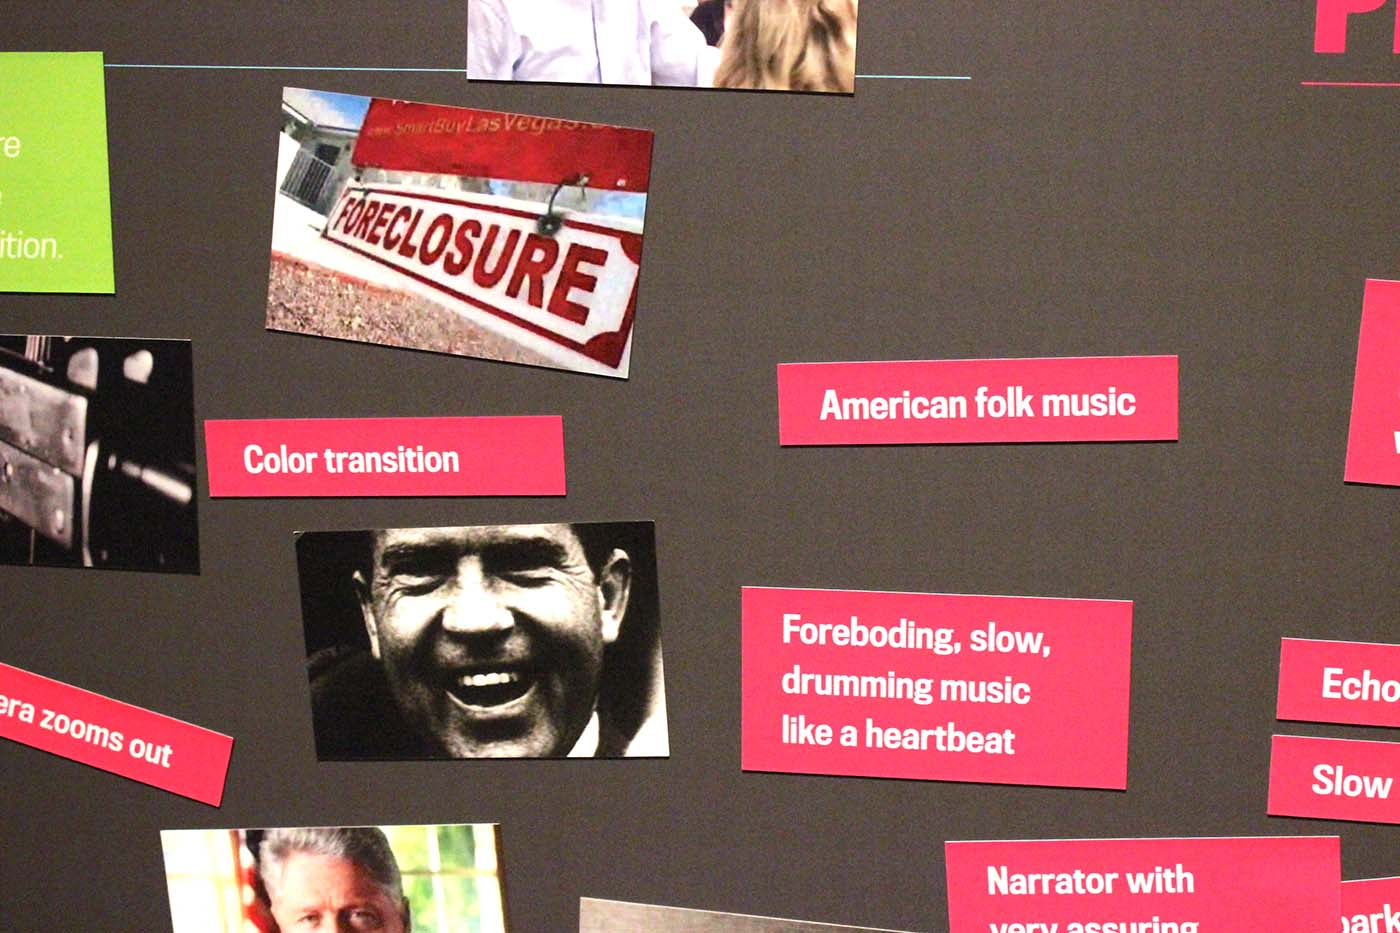 analyzing 50 years of american political advertising